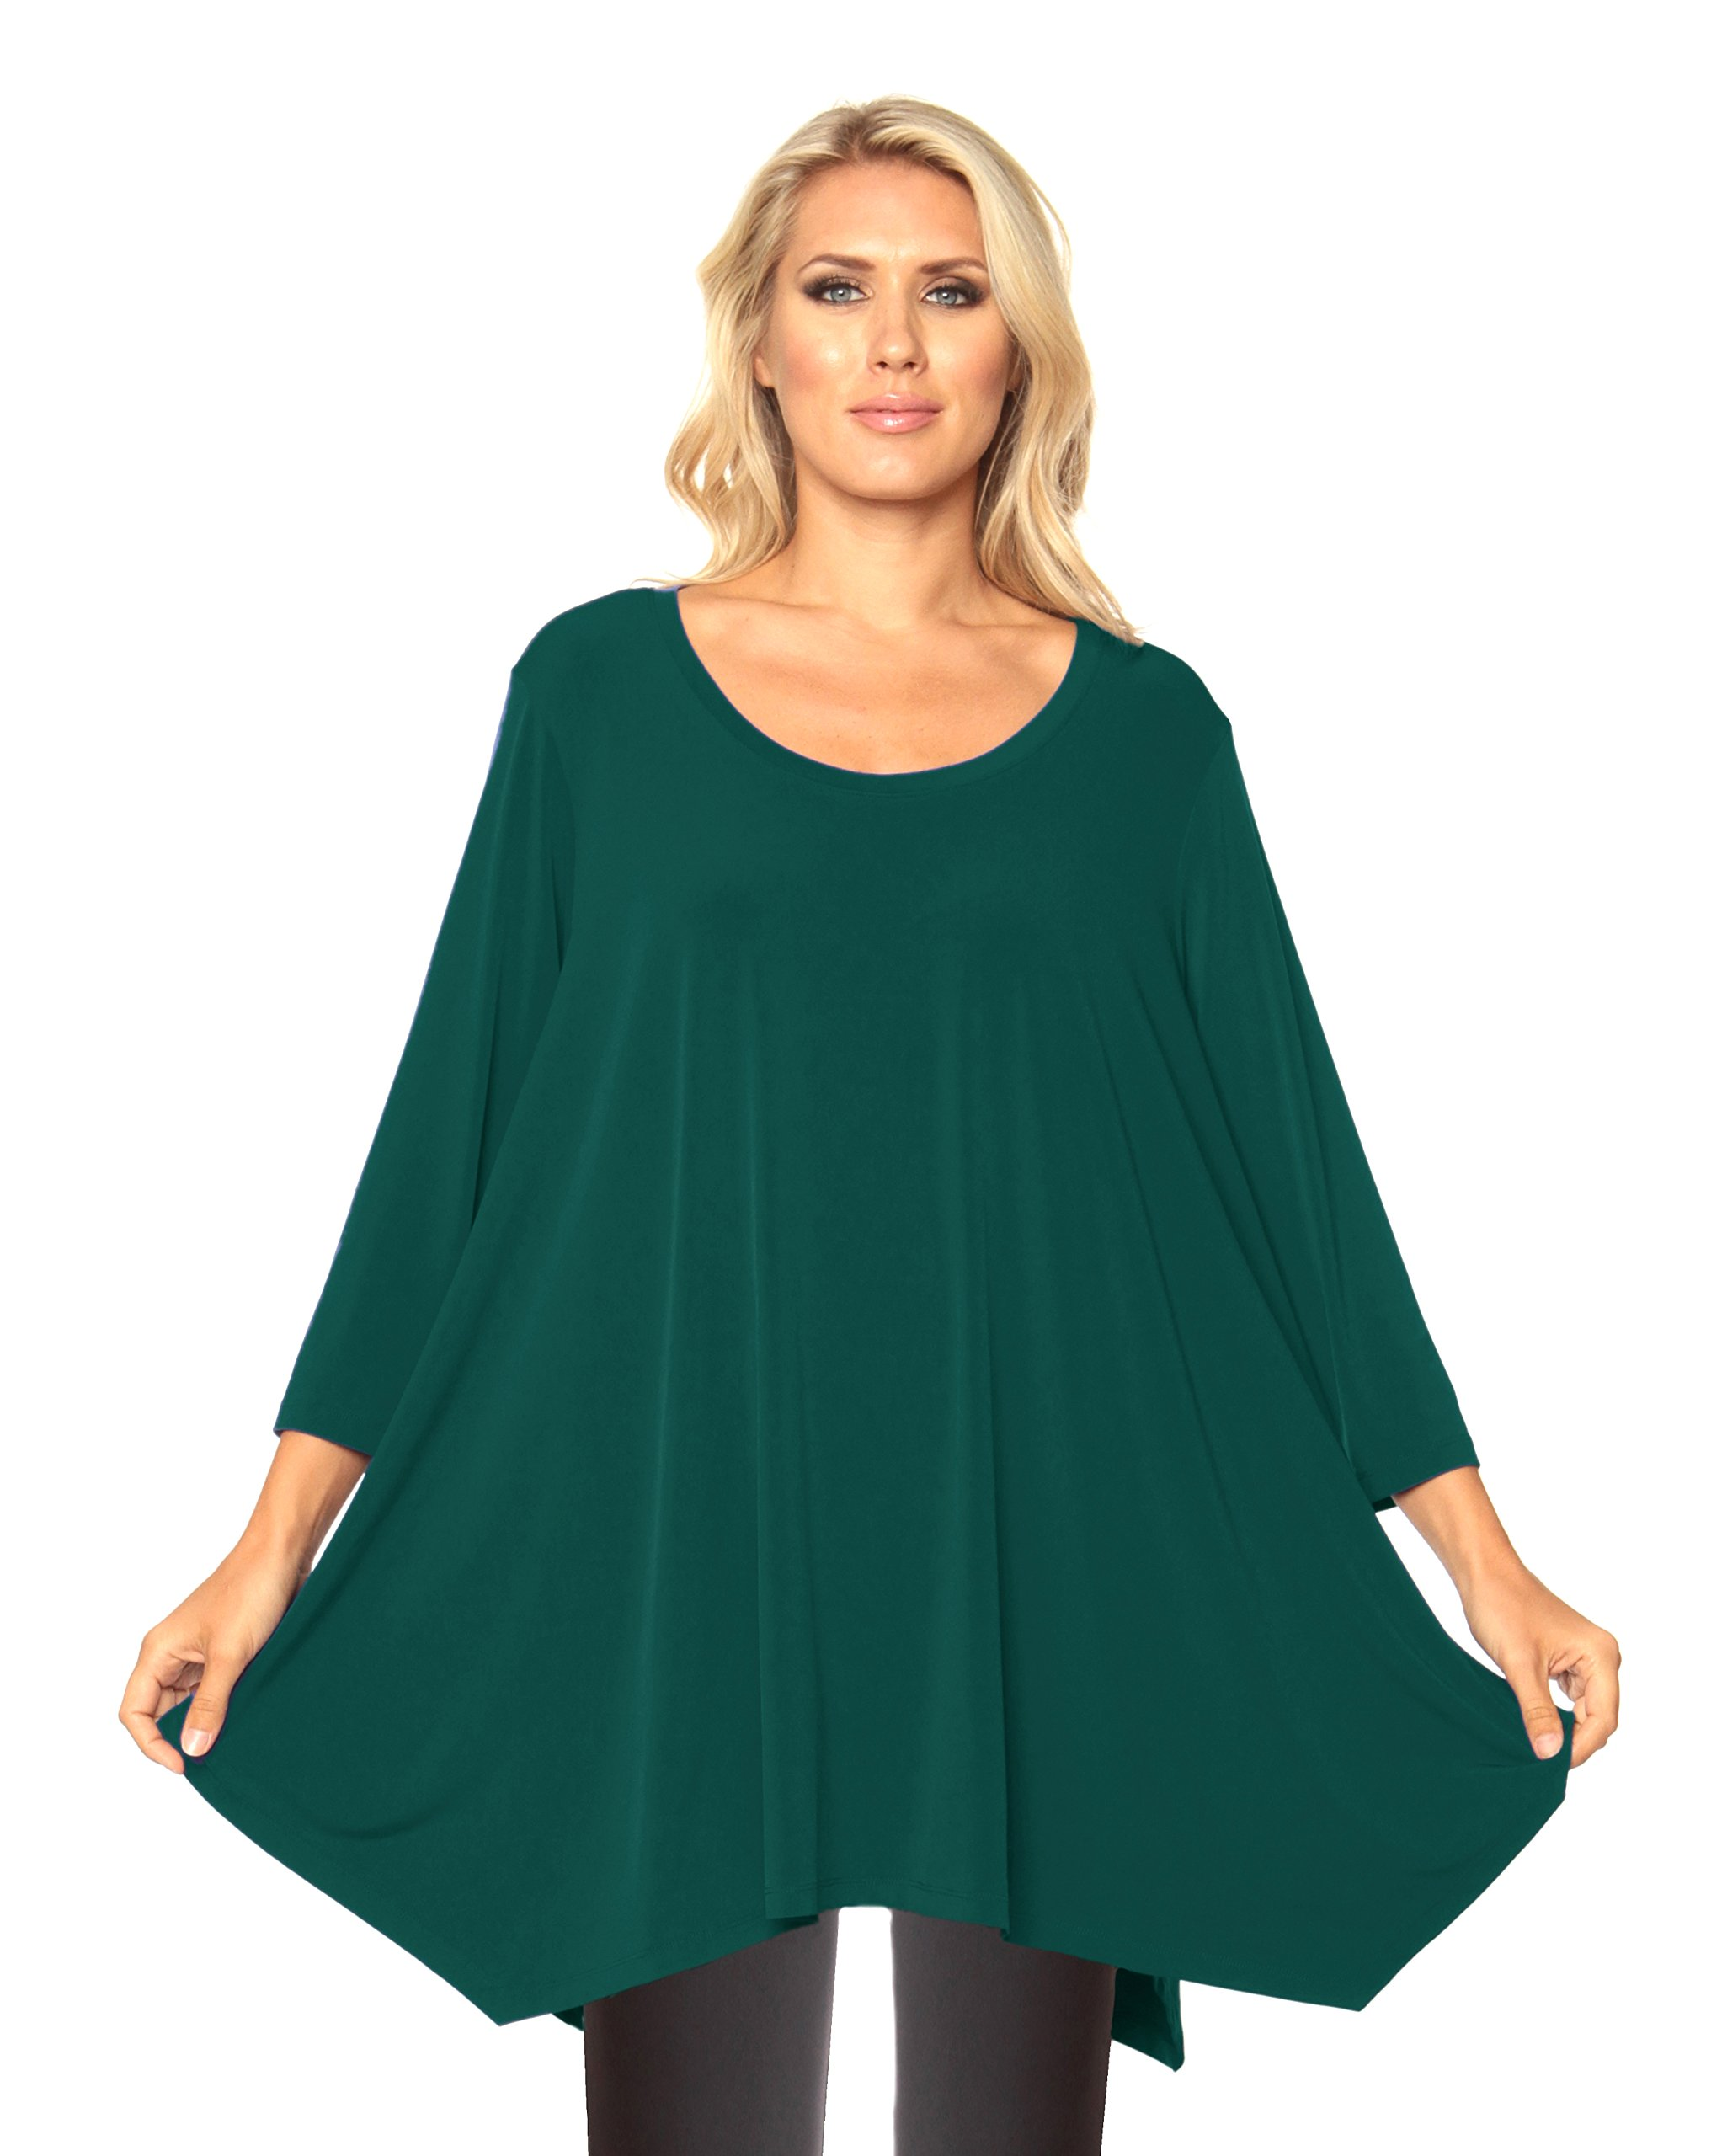 Alisha D Travel Wear Best Selling Plus Sized Tunic (2,New Forest)